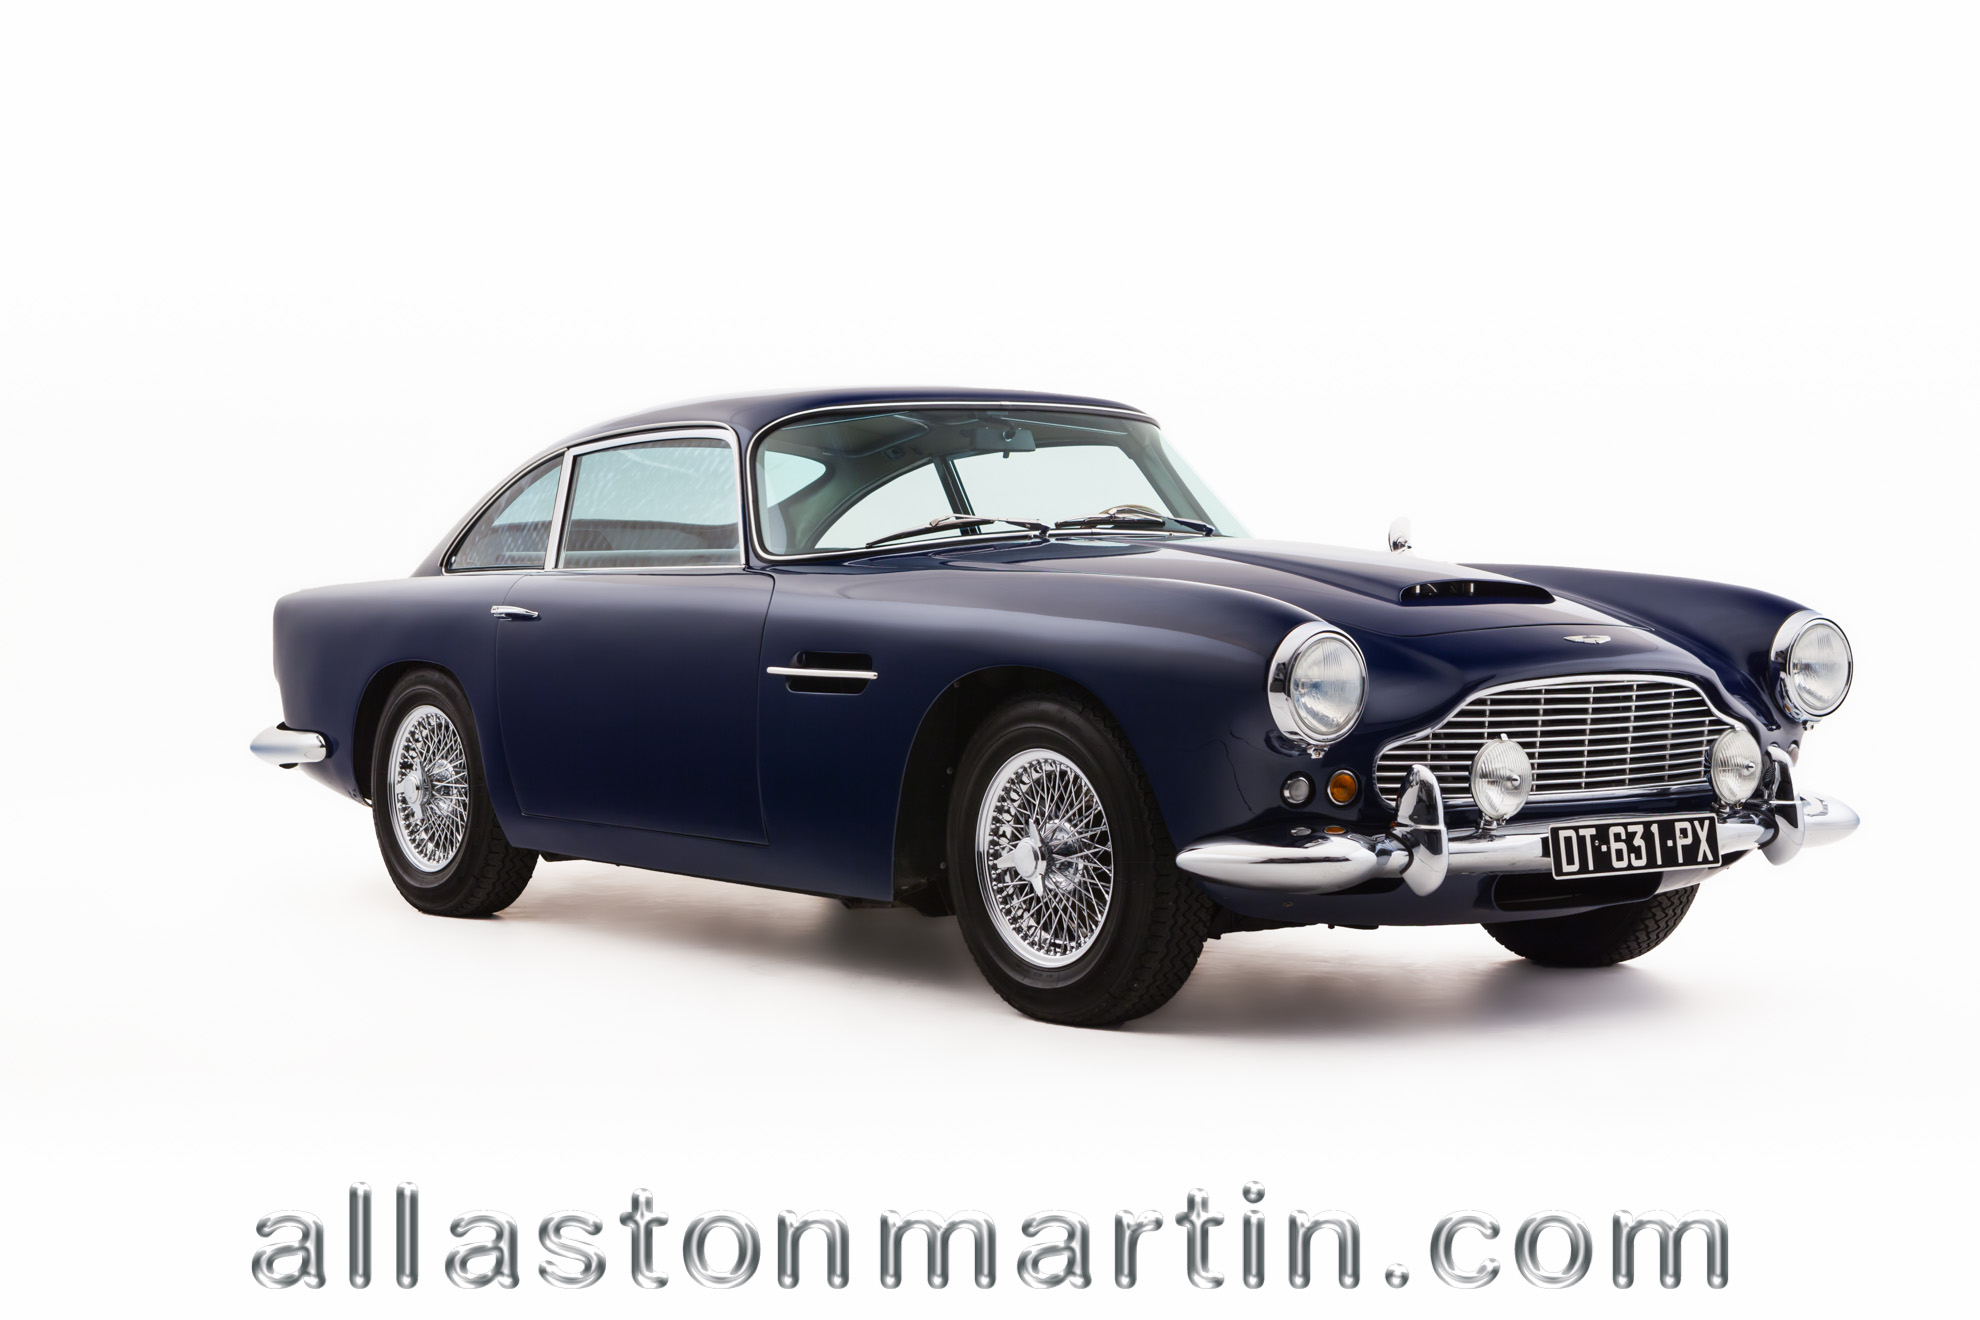 aston martin cars for sale buy aston martin sell aston martin. Black Bedroom Furniture Sets. Home Design Ideas